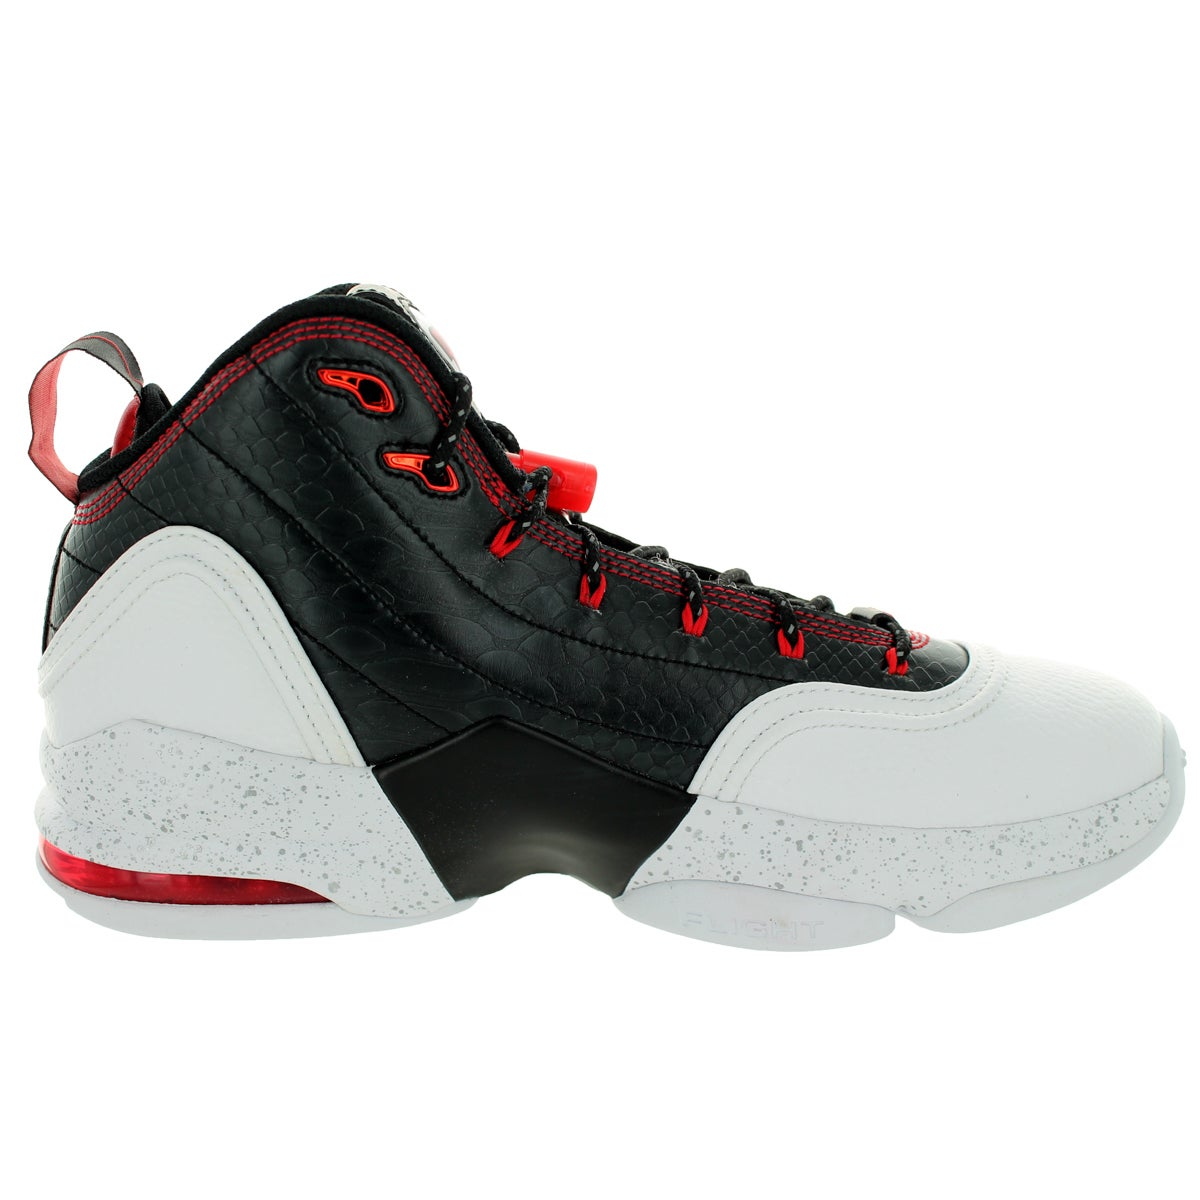 52d453fa1596 Shop Nike Men s Pippen 6 White University Red Black Basketball Shoe - Free  Shipping Today - Overstock - 12329317